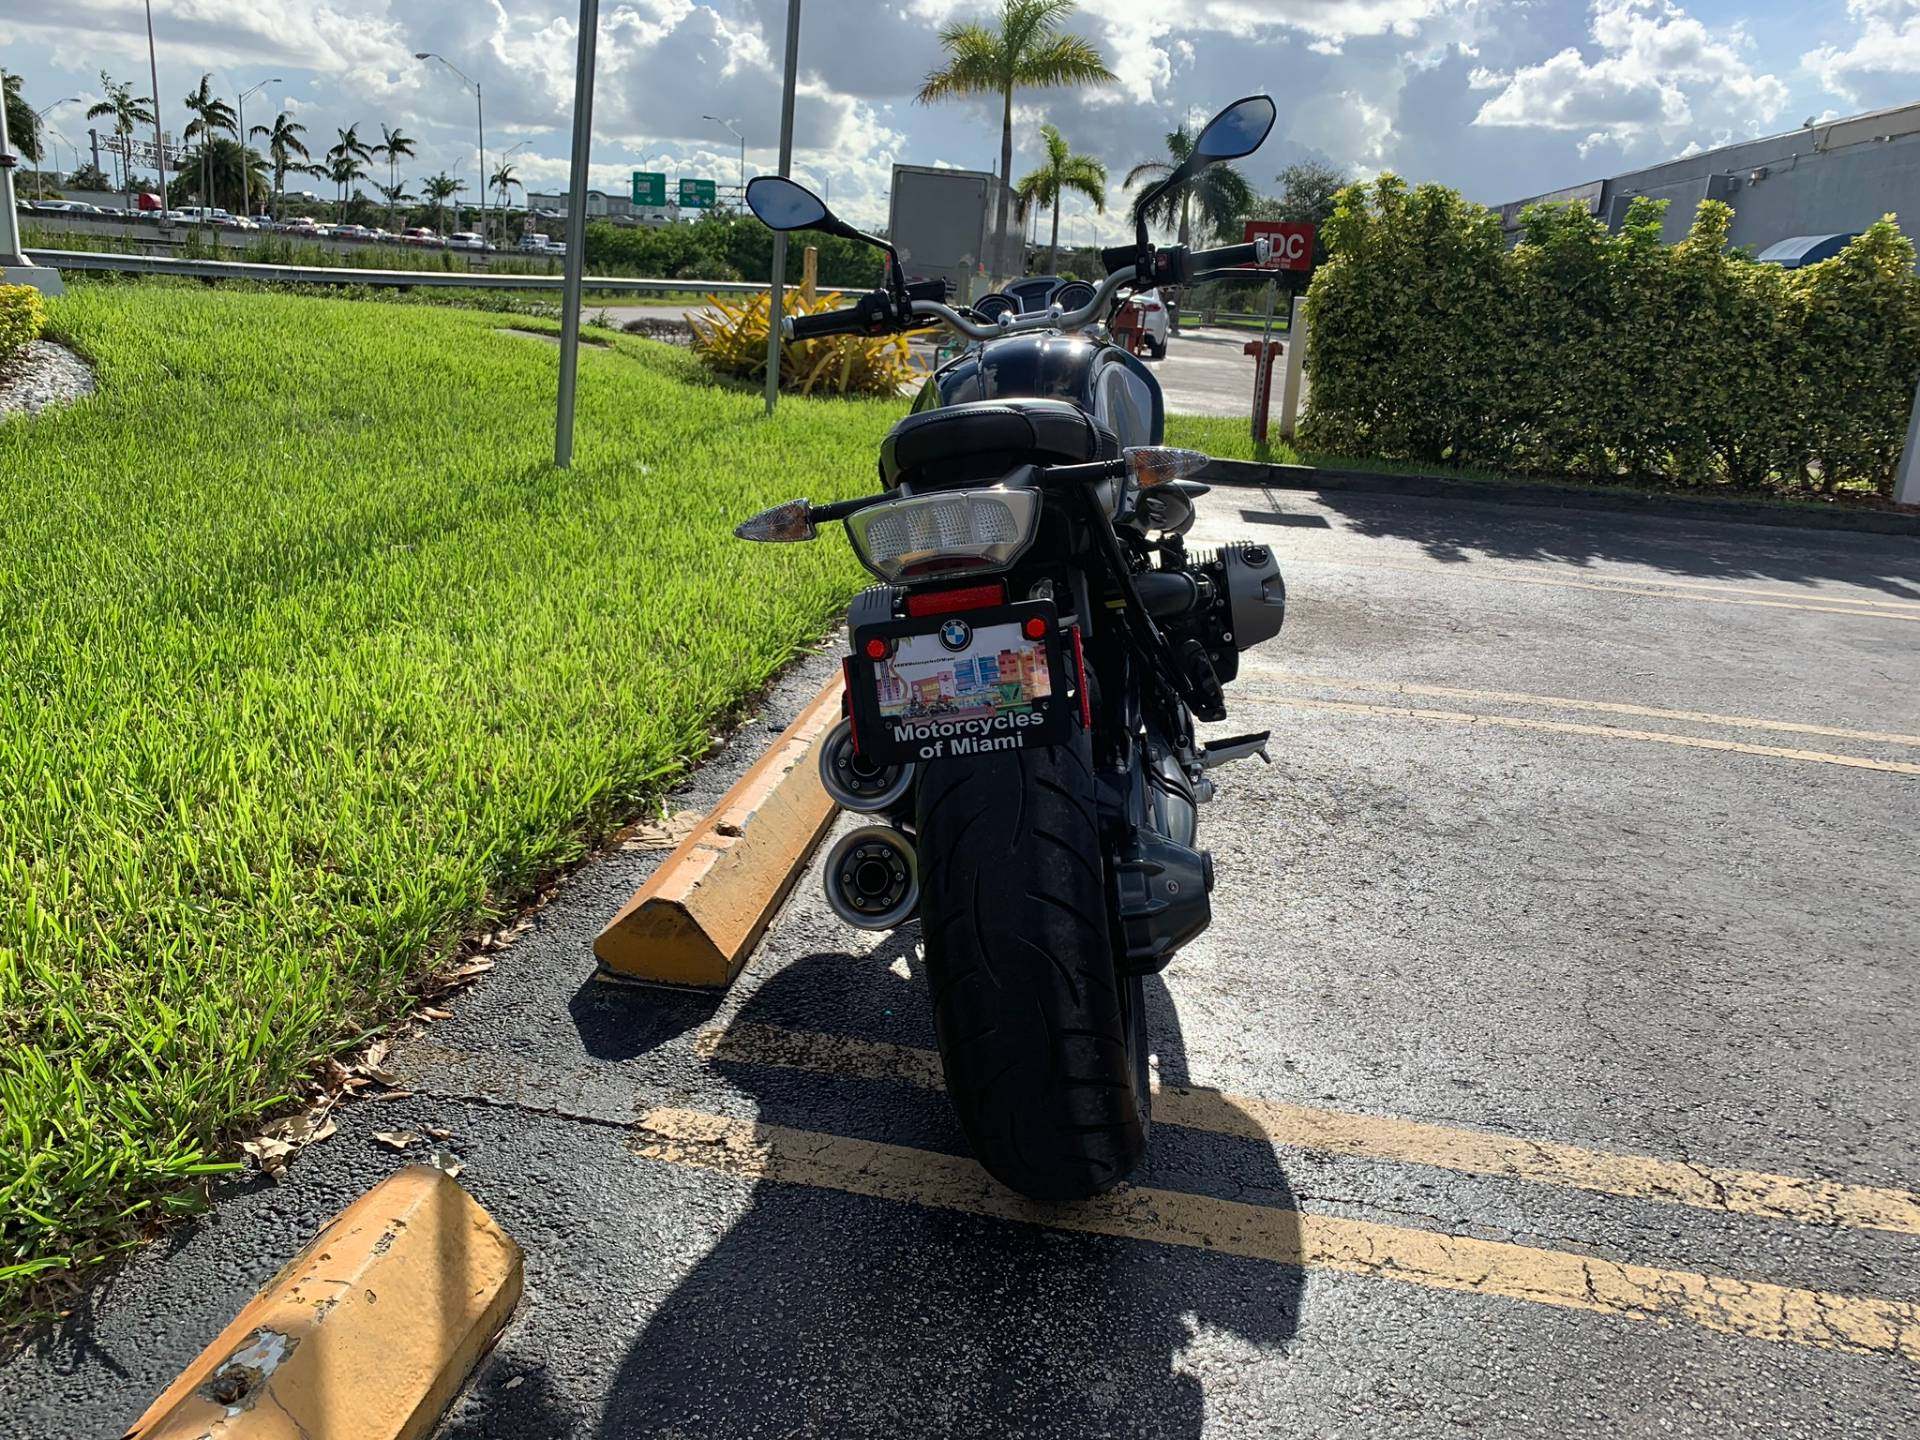 Used 2016 BMW R NineT for sale, BMW for sale, BMW Motorcycle Café Racer, new BMW Caffe, Cafe Racer, BMW. BMW Motorcycles of Miami, Motorcycles of Miami, Motorcycles Miami, New Motorcycles, Used Motorcycles, pre-owned. #BMWMotorcyclesOfMiami #MotorcyclesOfMiami. - Photo 22